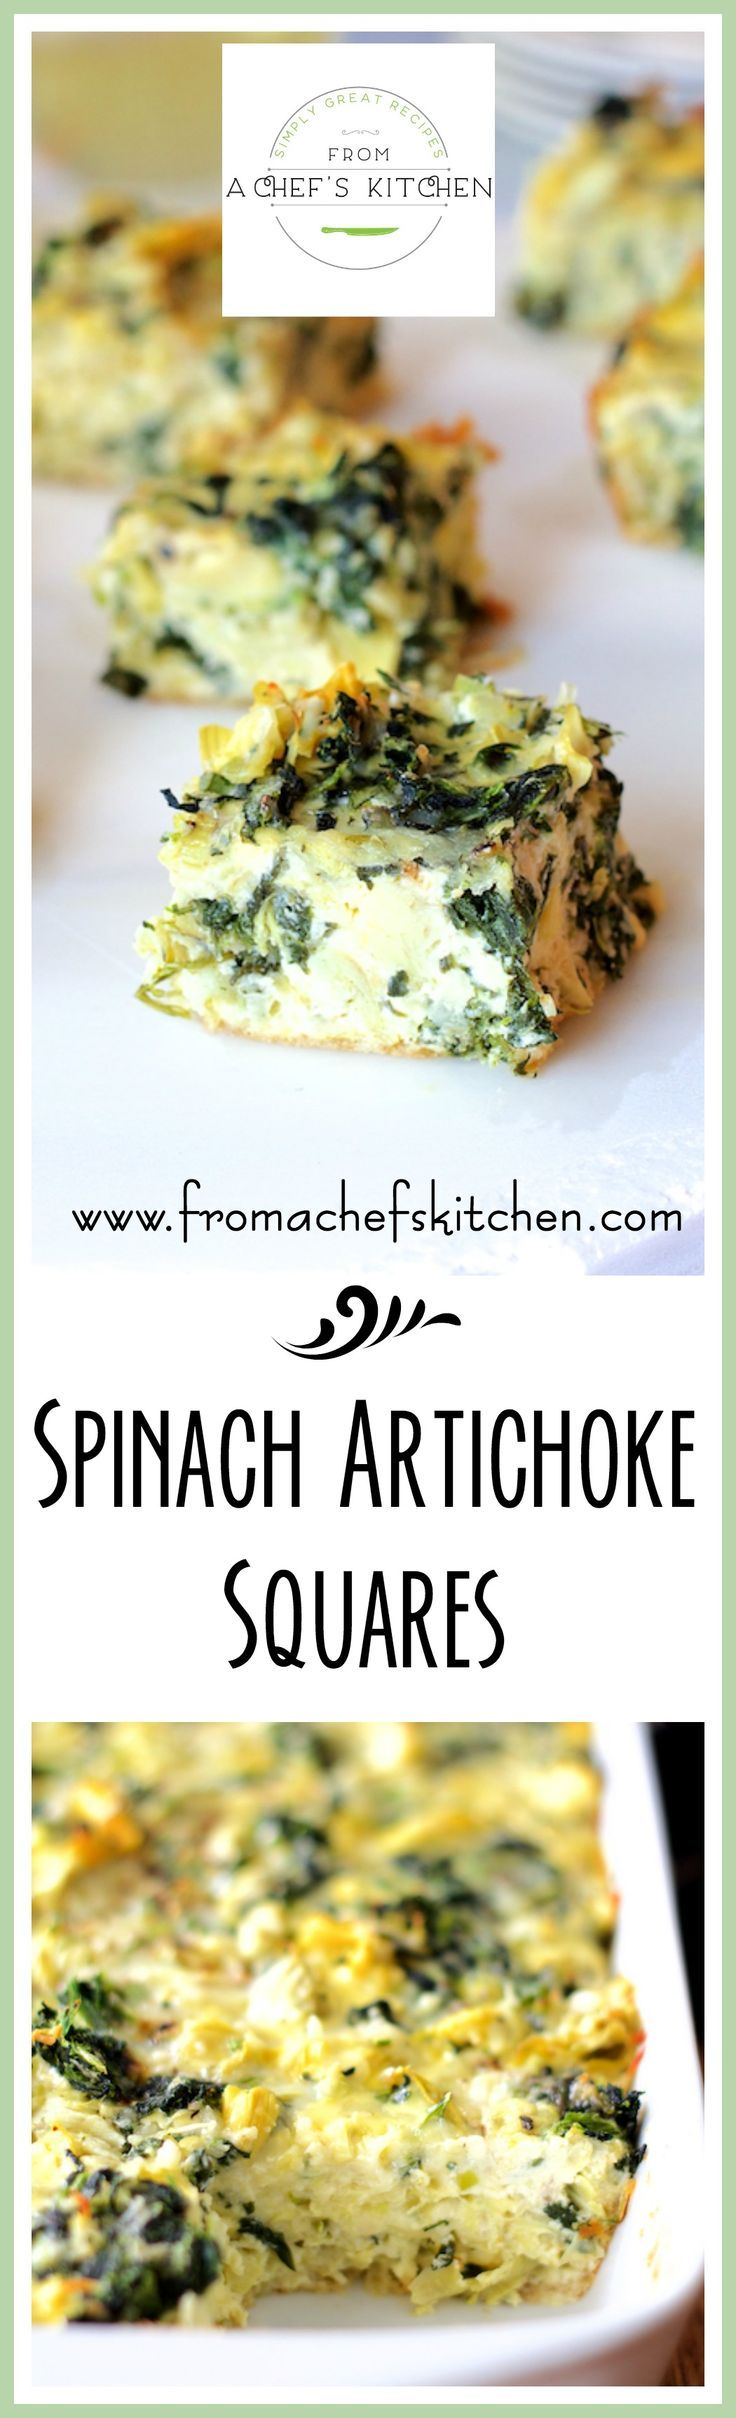 Spinach Artichoke Squares are an elegant low-carb spin on classic spinach artichoke dip! Perfect for a party, breakfast, brunch or lunch.